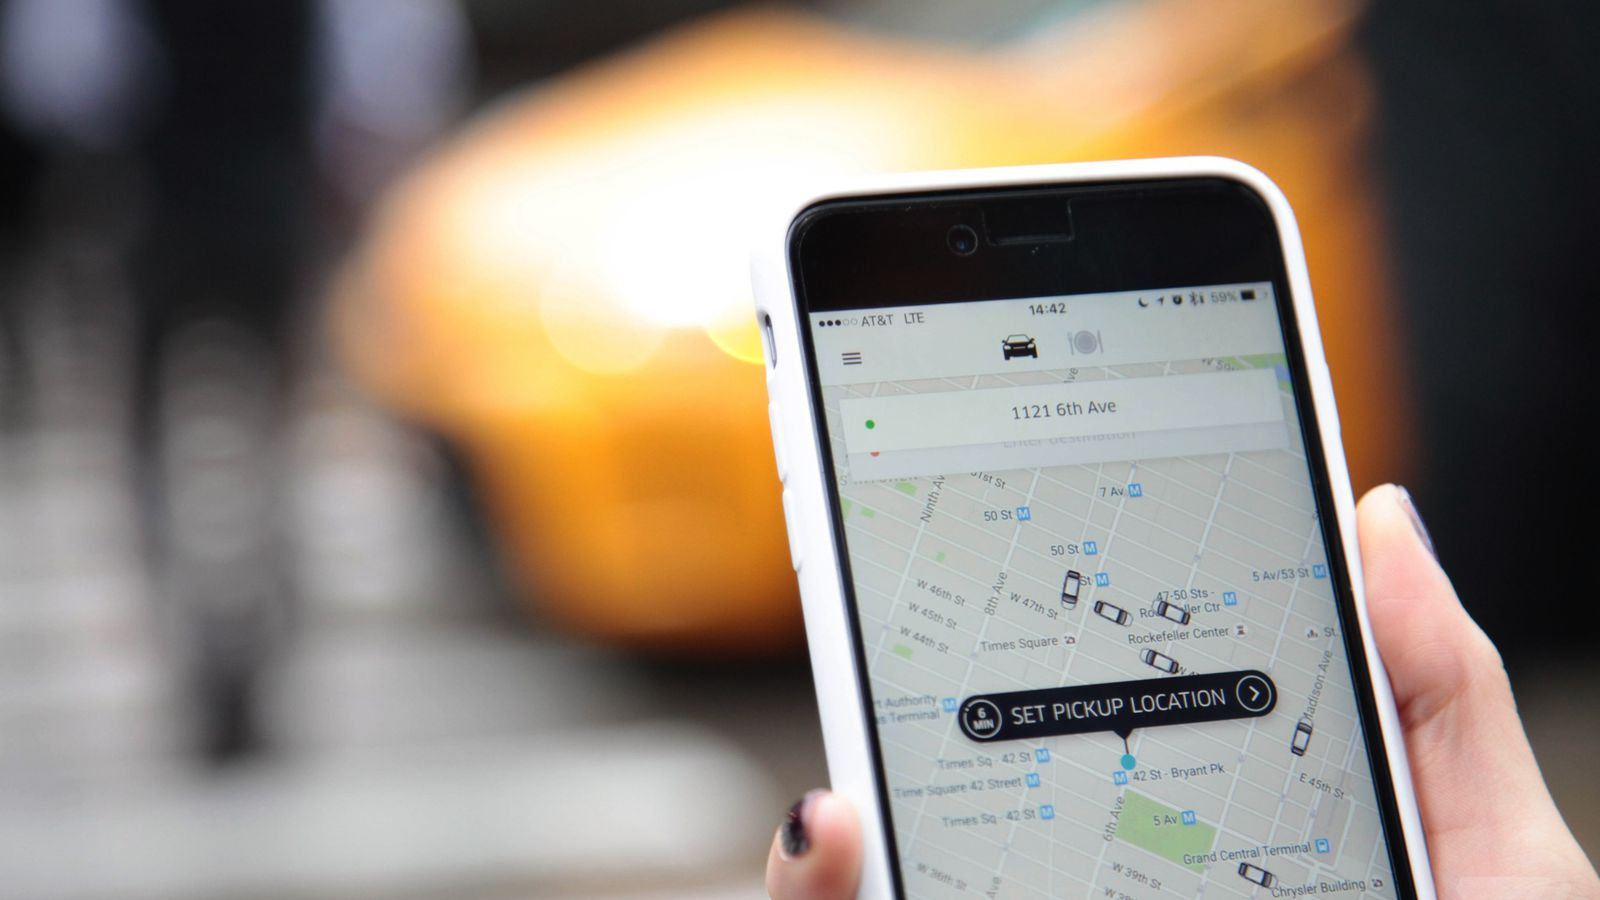 Uber Lux Cars >> Italy issues a nationwide Uber ban - The Verge